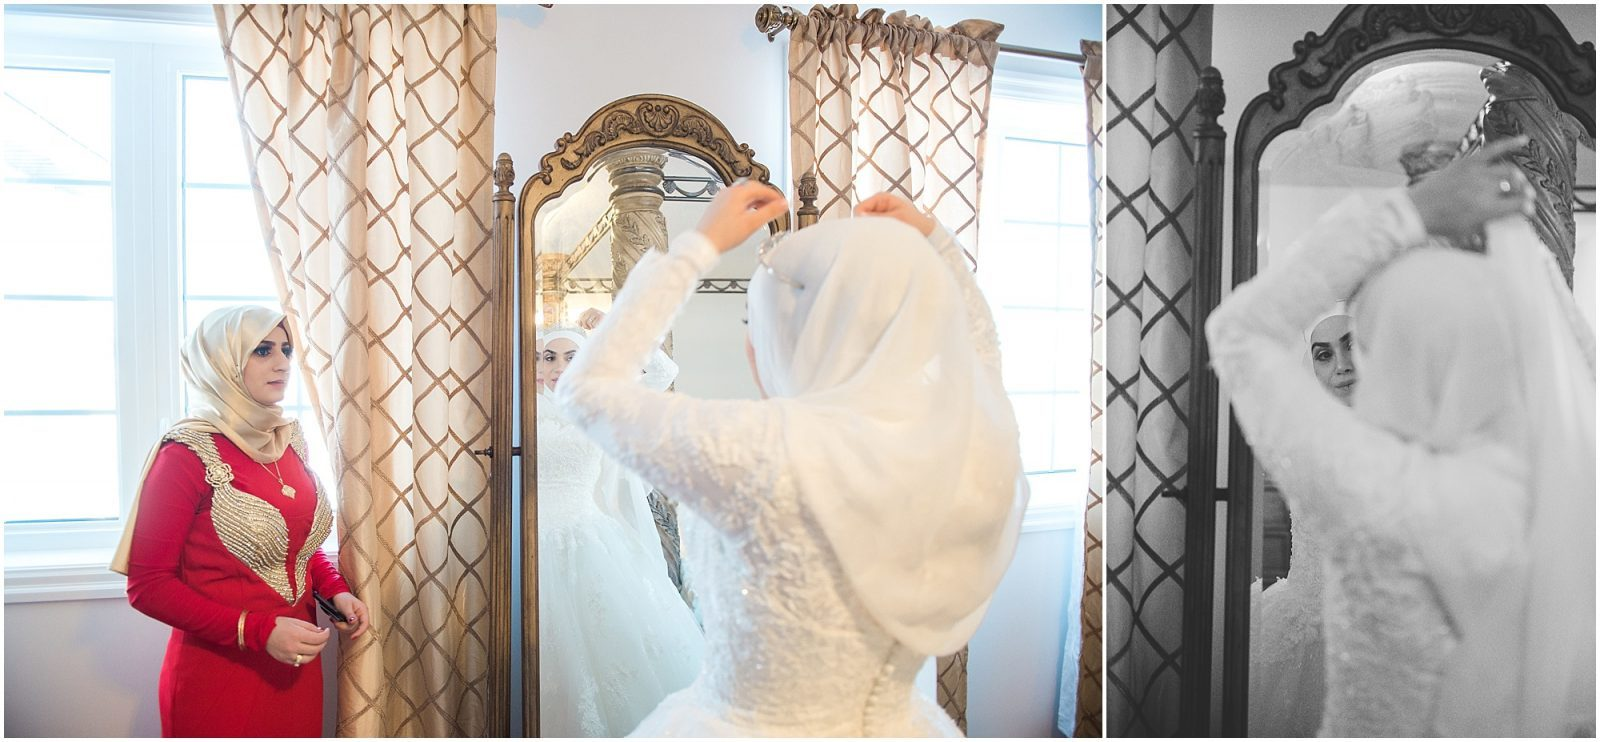 241NourHussein_PinheyForest_Ottawa_Wedding_Photosbyemmah.jpg